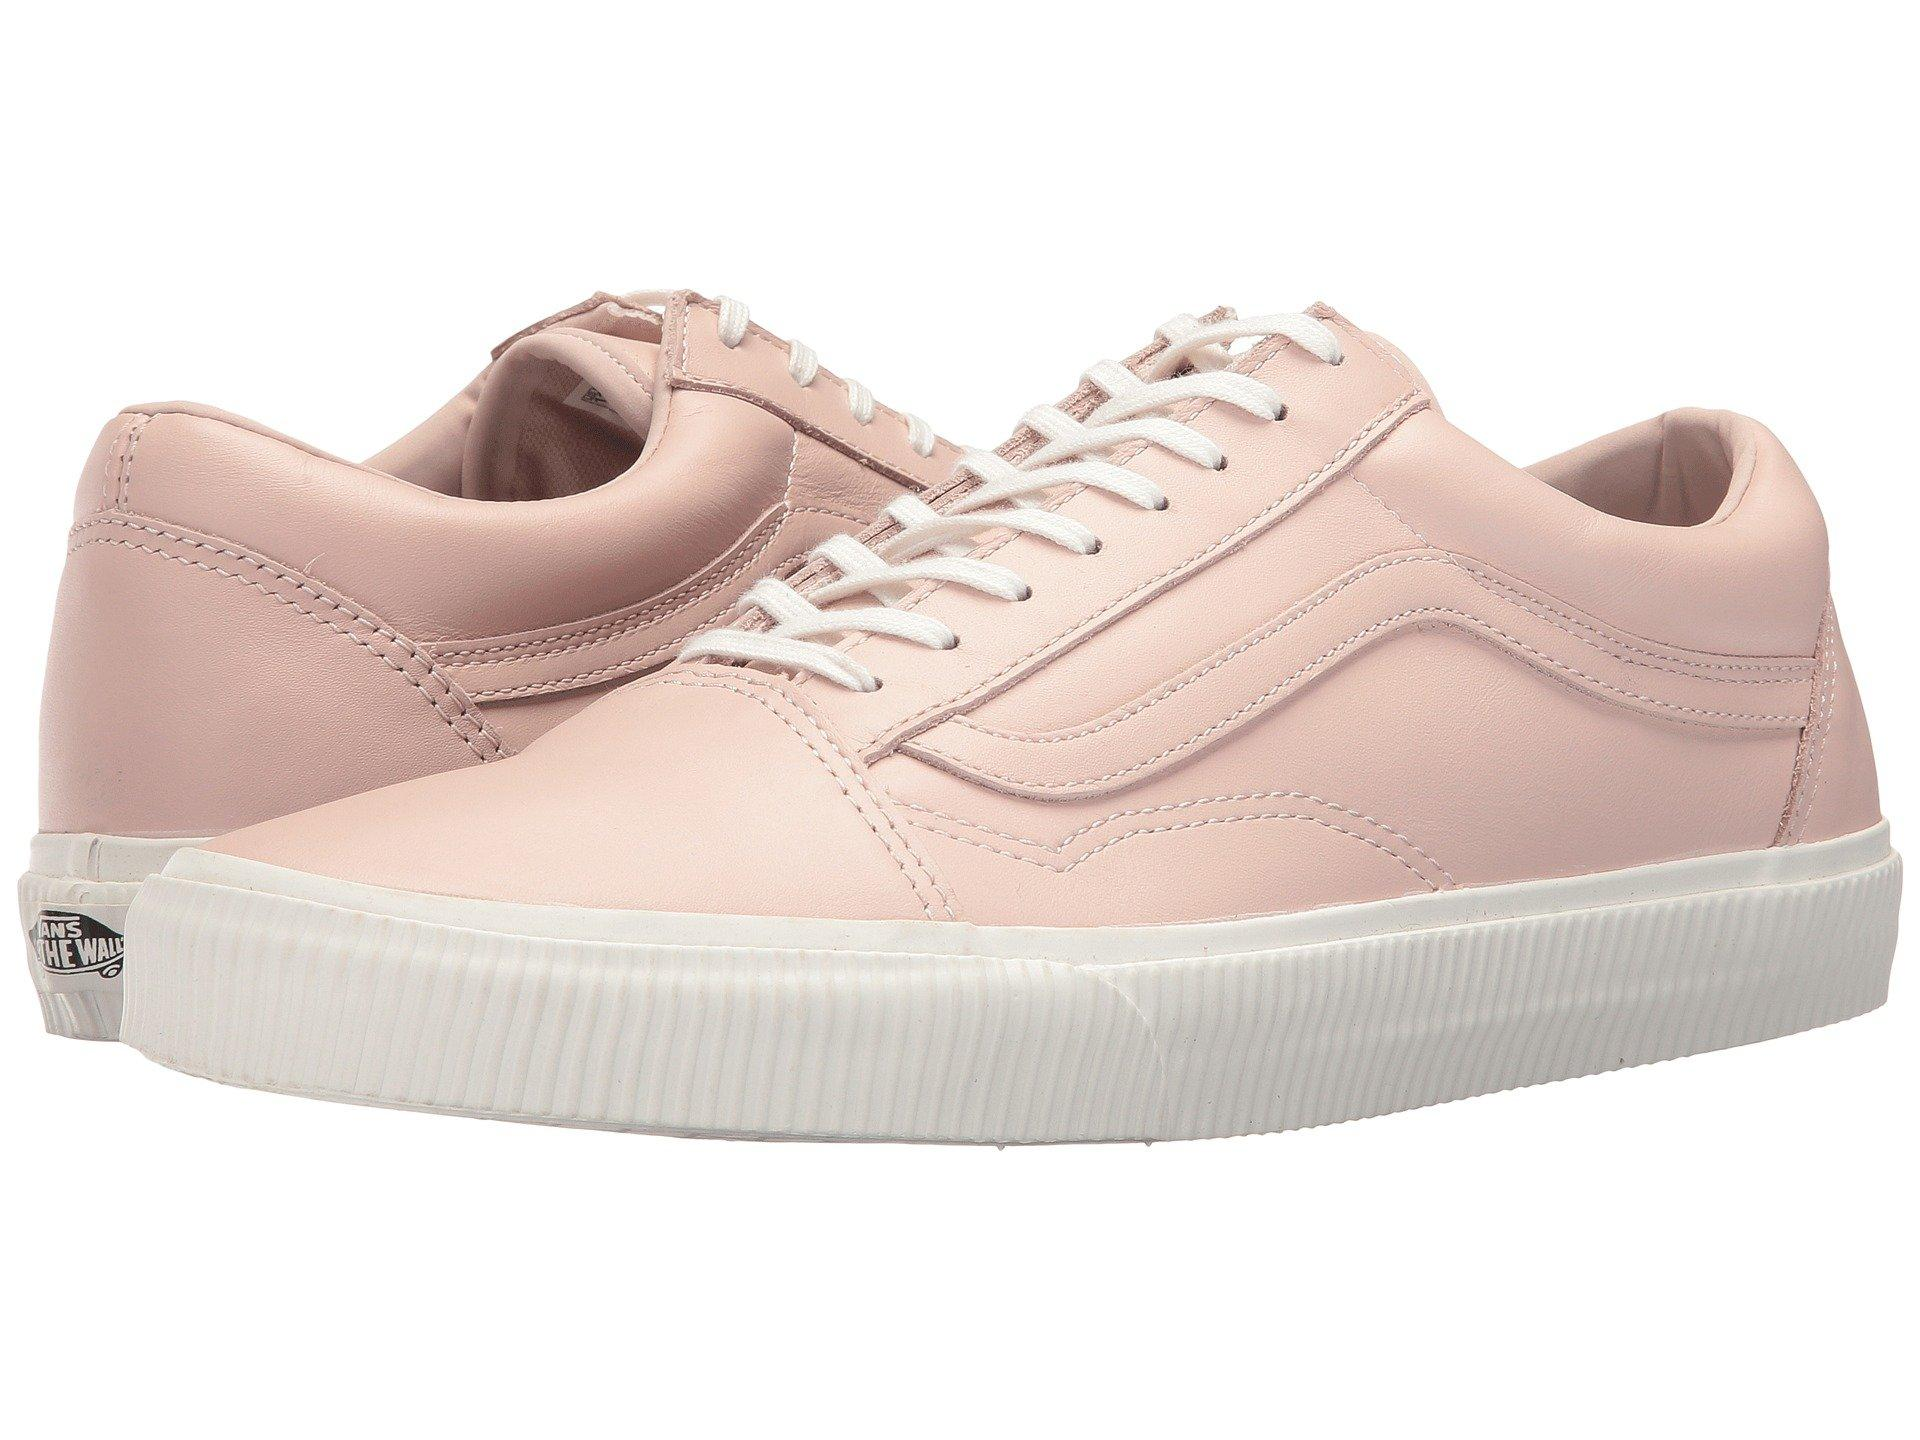 Vans Old Skool™ In (Embossed Sidewall) Sepia Rose Blanc De Blanc ... 88ebf8056